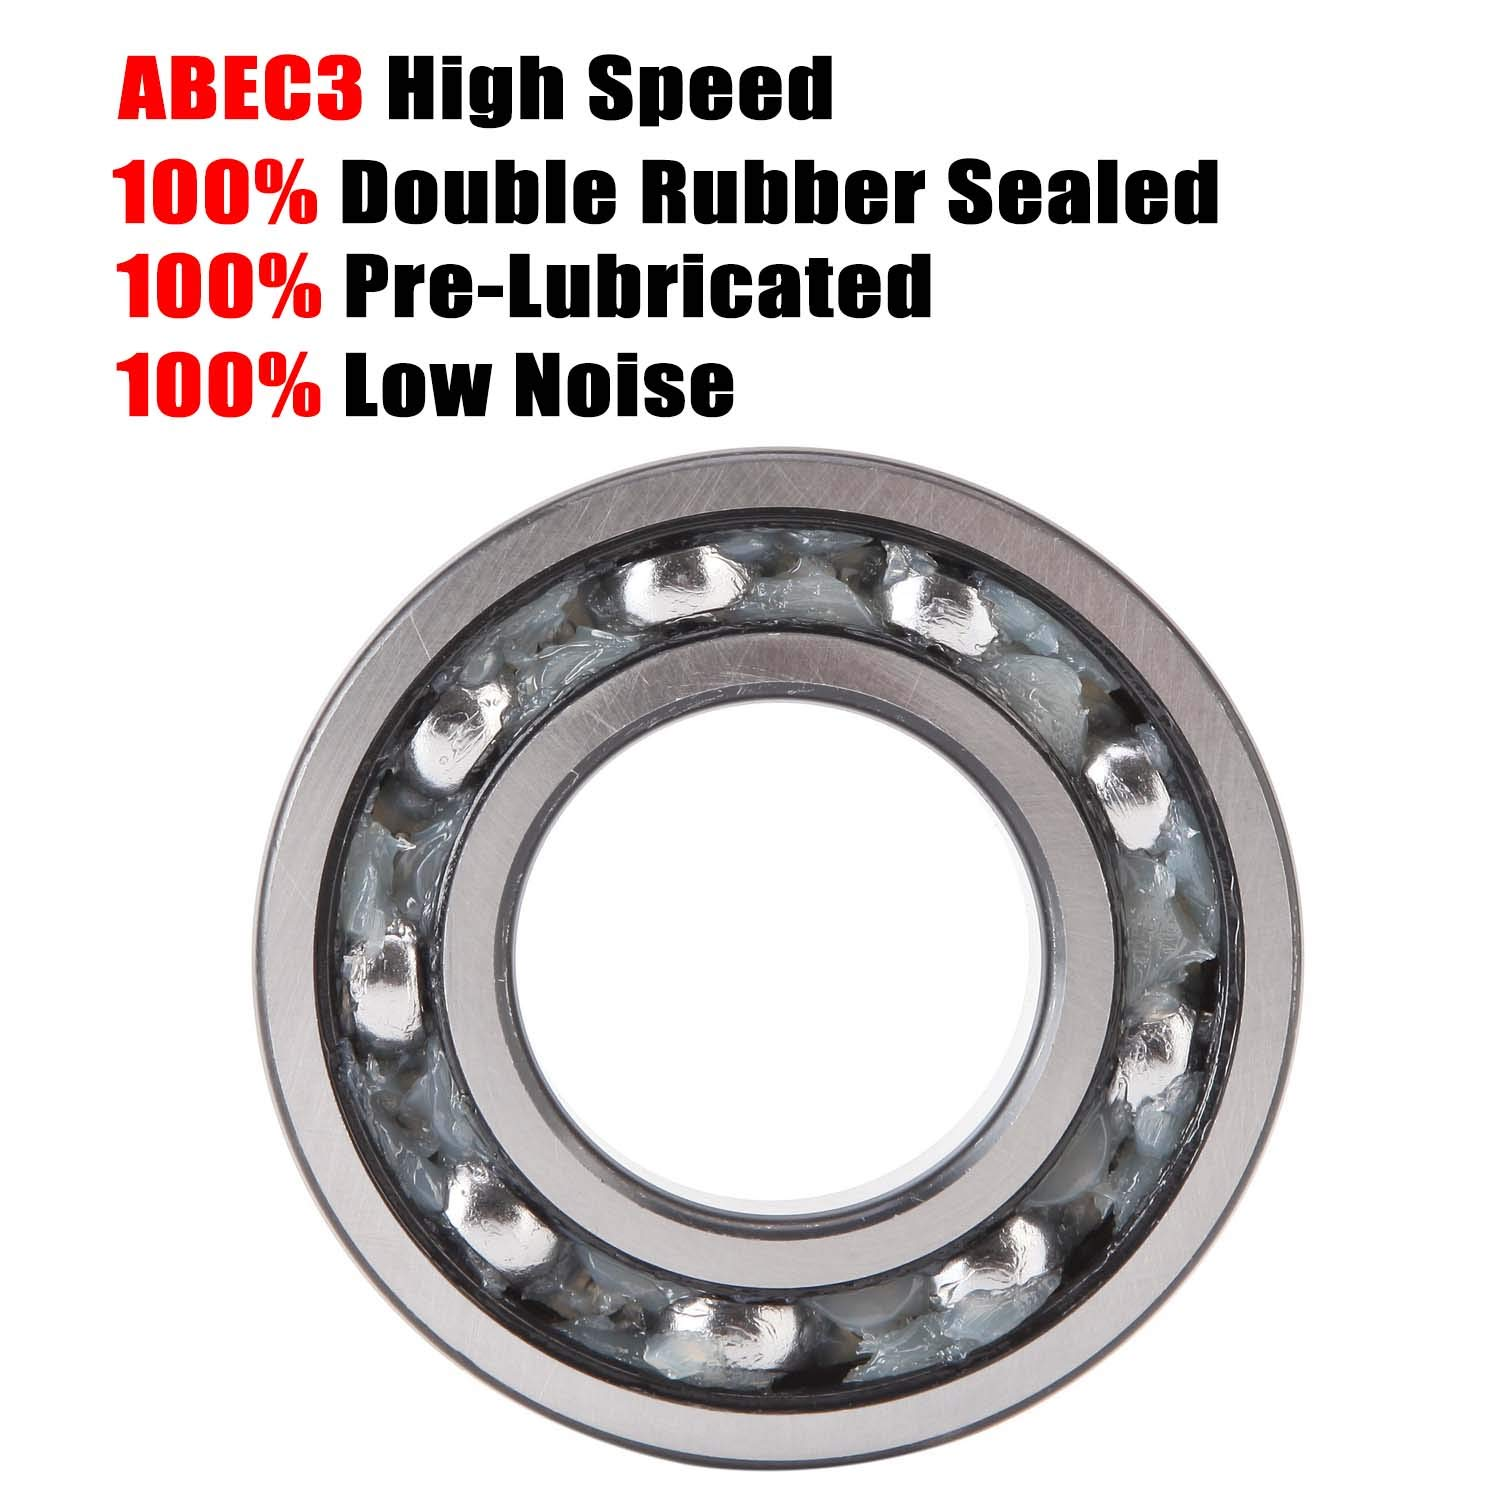 Donepart 2 Pcs 6200 Bearings 6200RS Ball Bearings 10mm x30mm x9mm C3 Precision Double Rubber Sealed and Pre-Lubricated Deep Groove Bearings